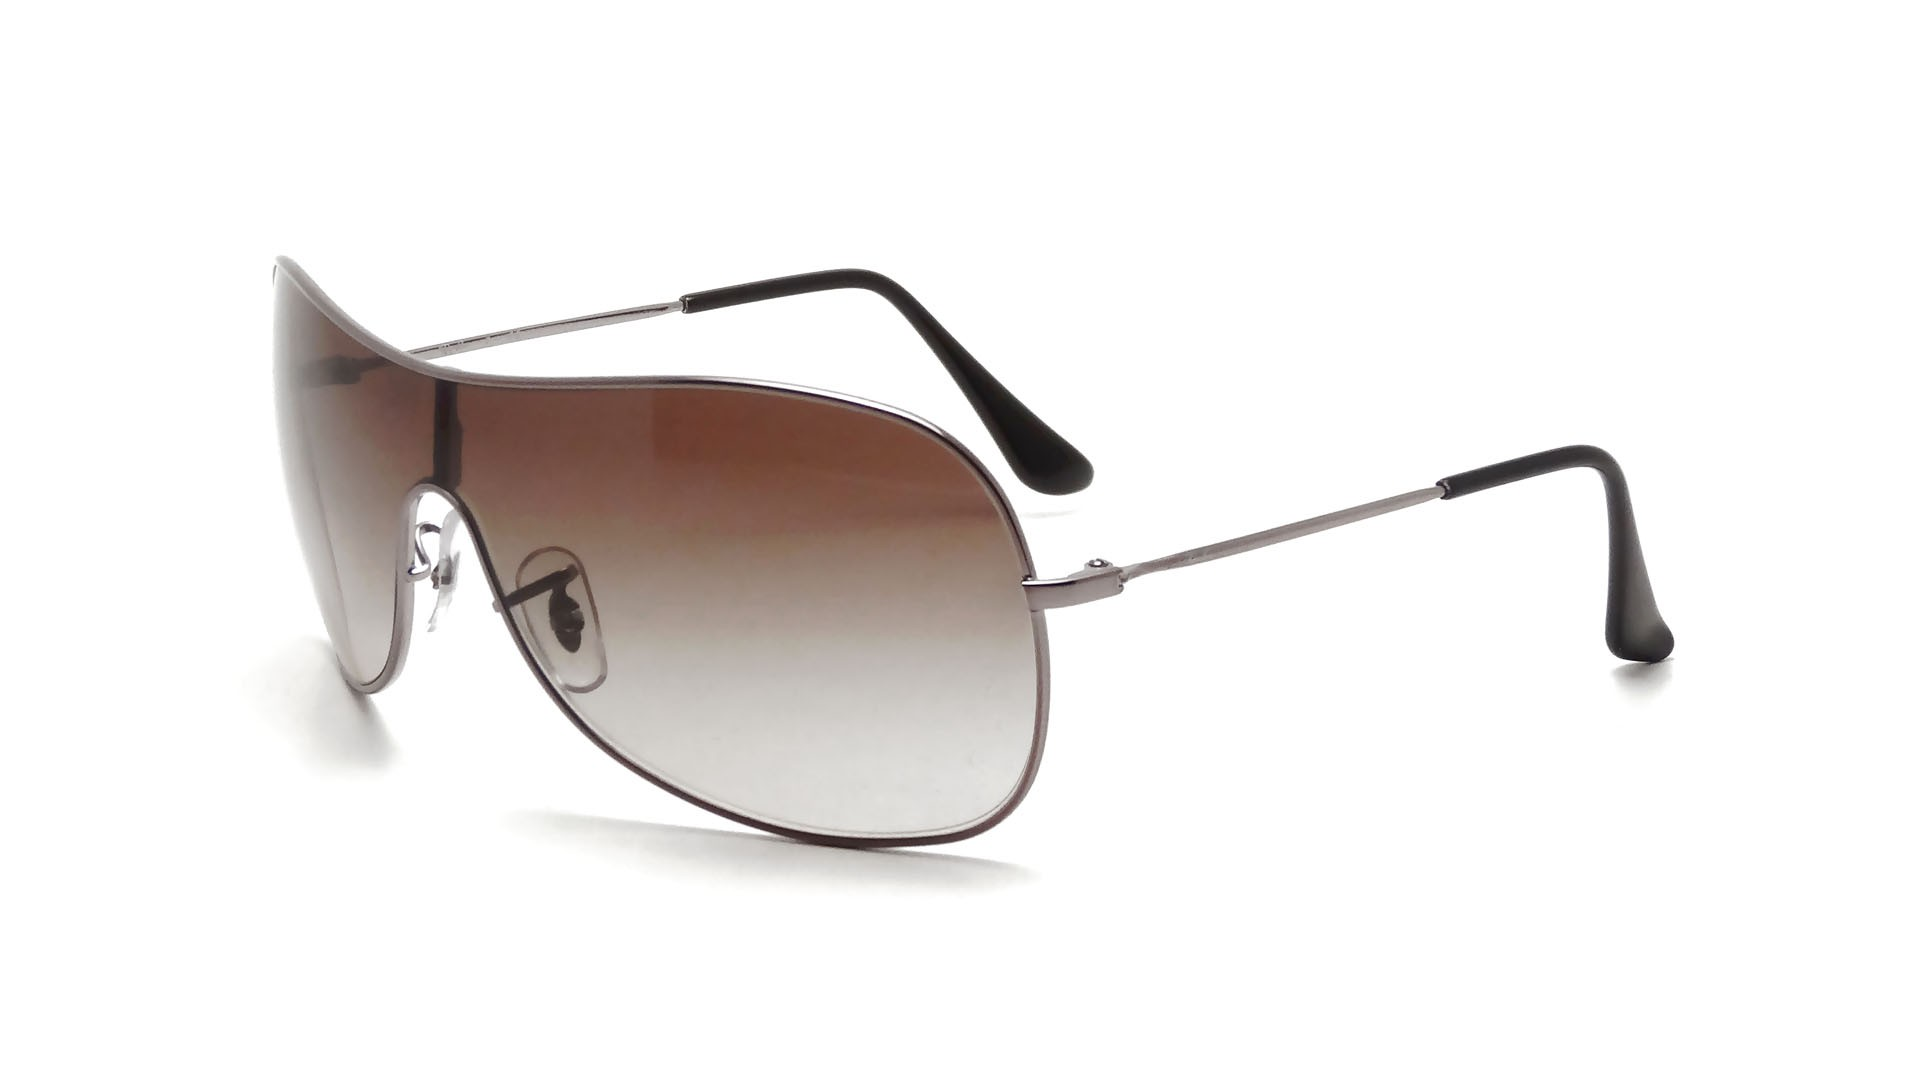 c6dc5293ed Rb3211 Small Ray Ban